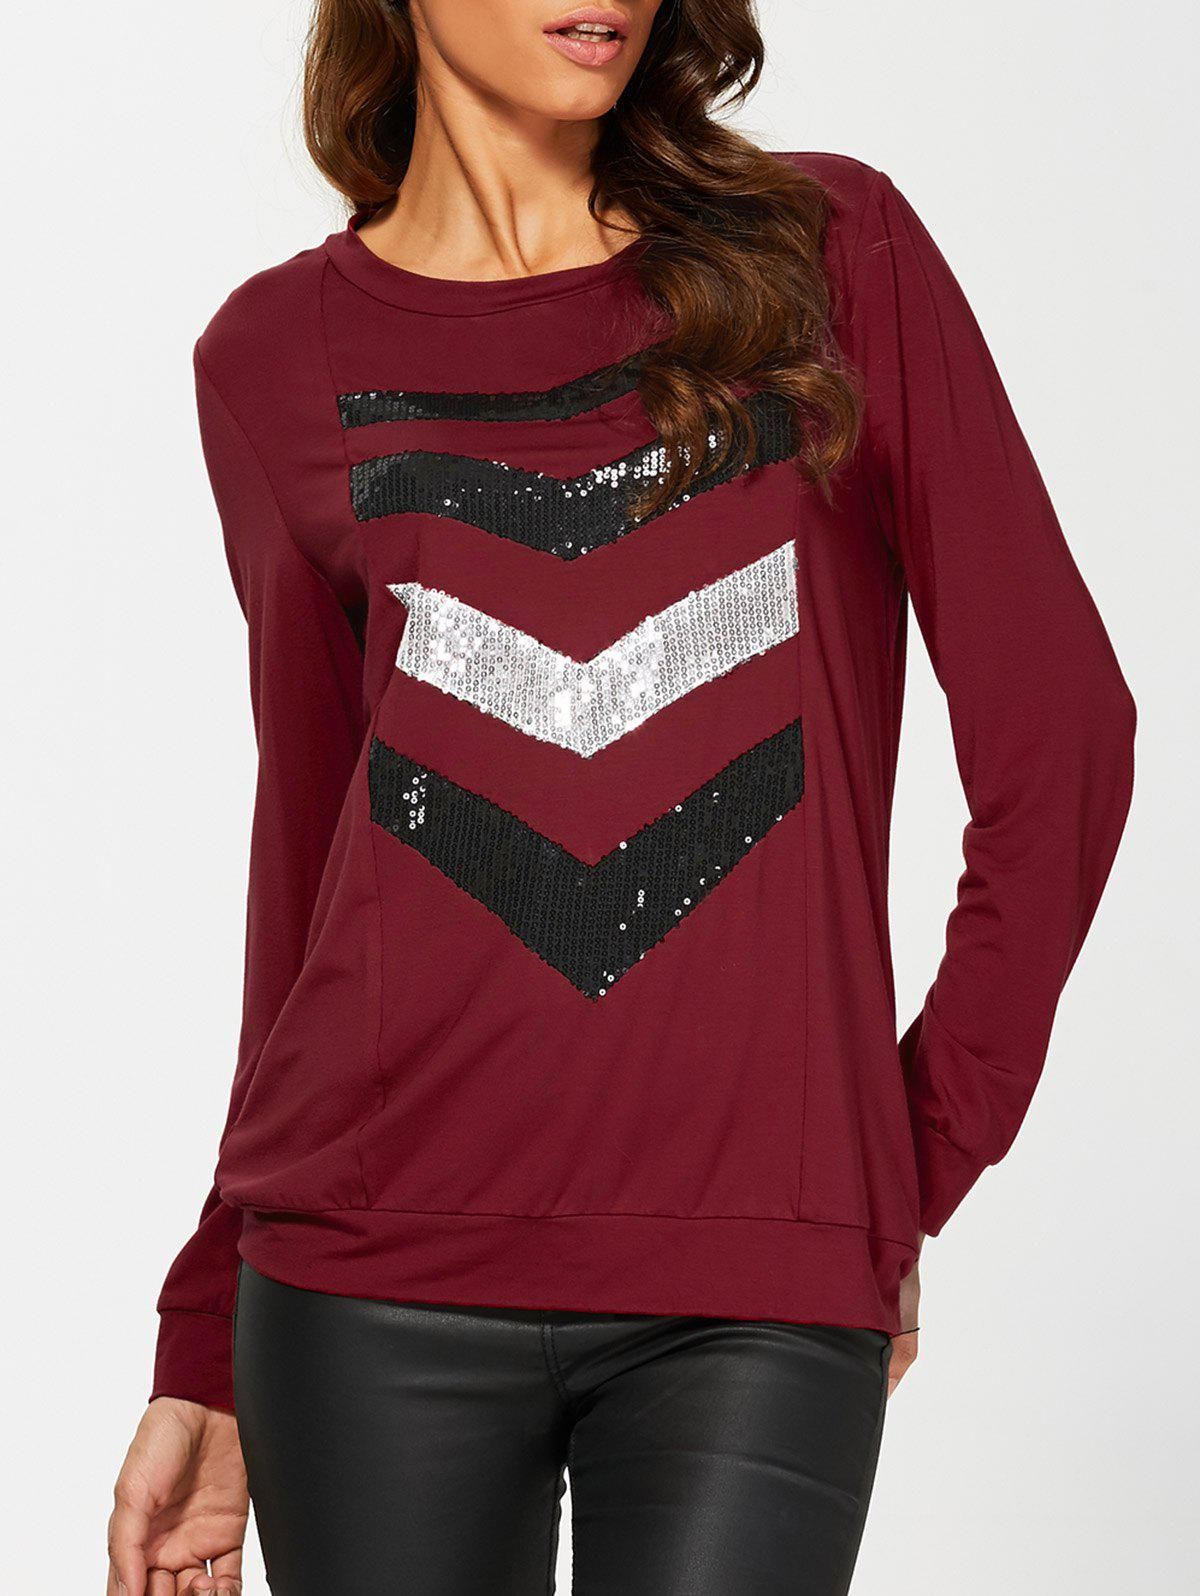 Sequined Insert SweatshirtWomen<br><br><br>Size: L<br>Color: BLACK AND WHITE AND RED